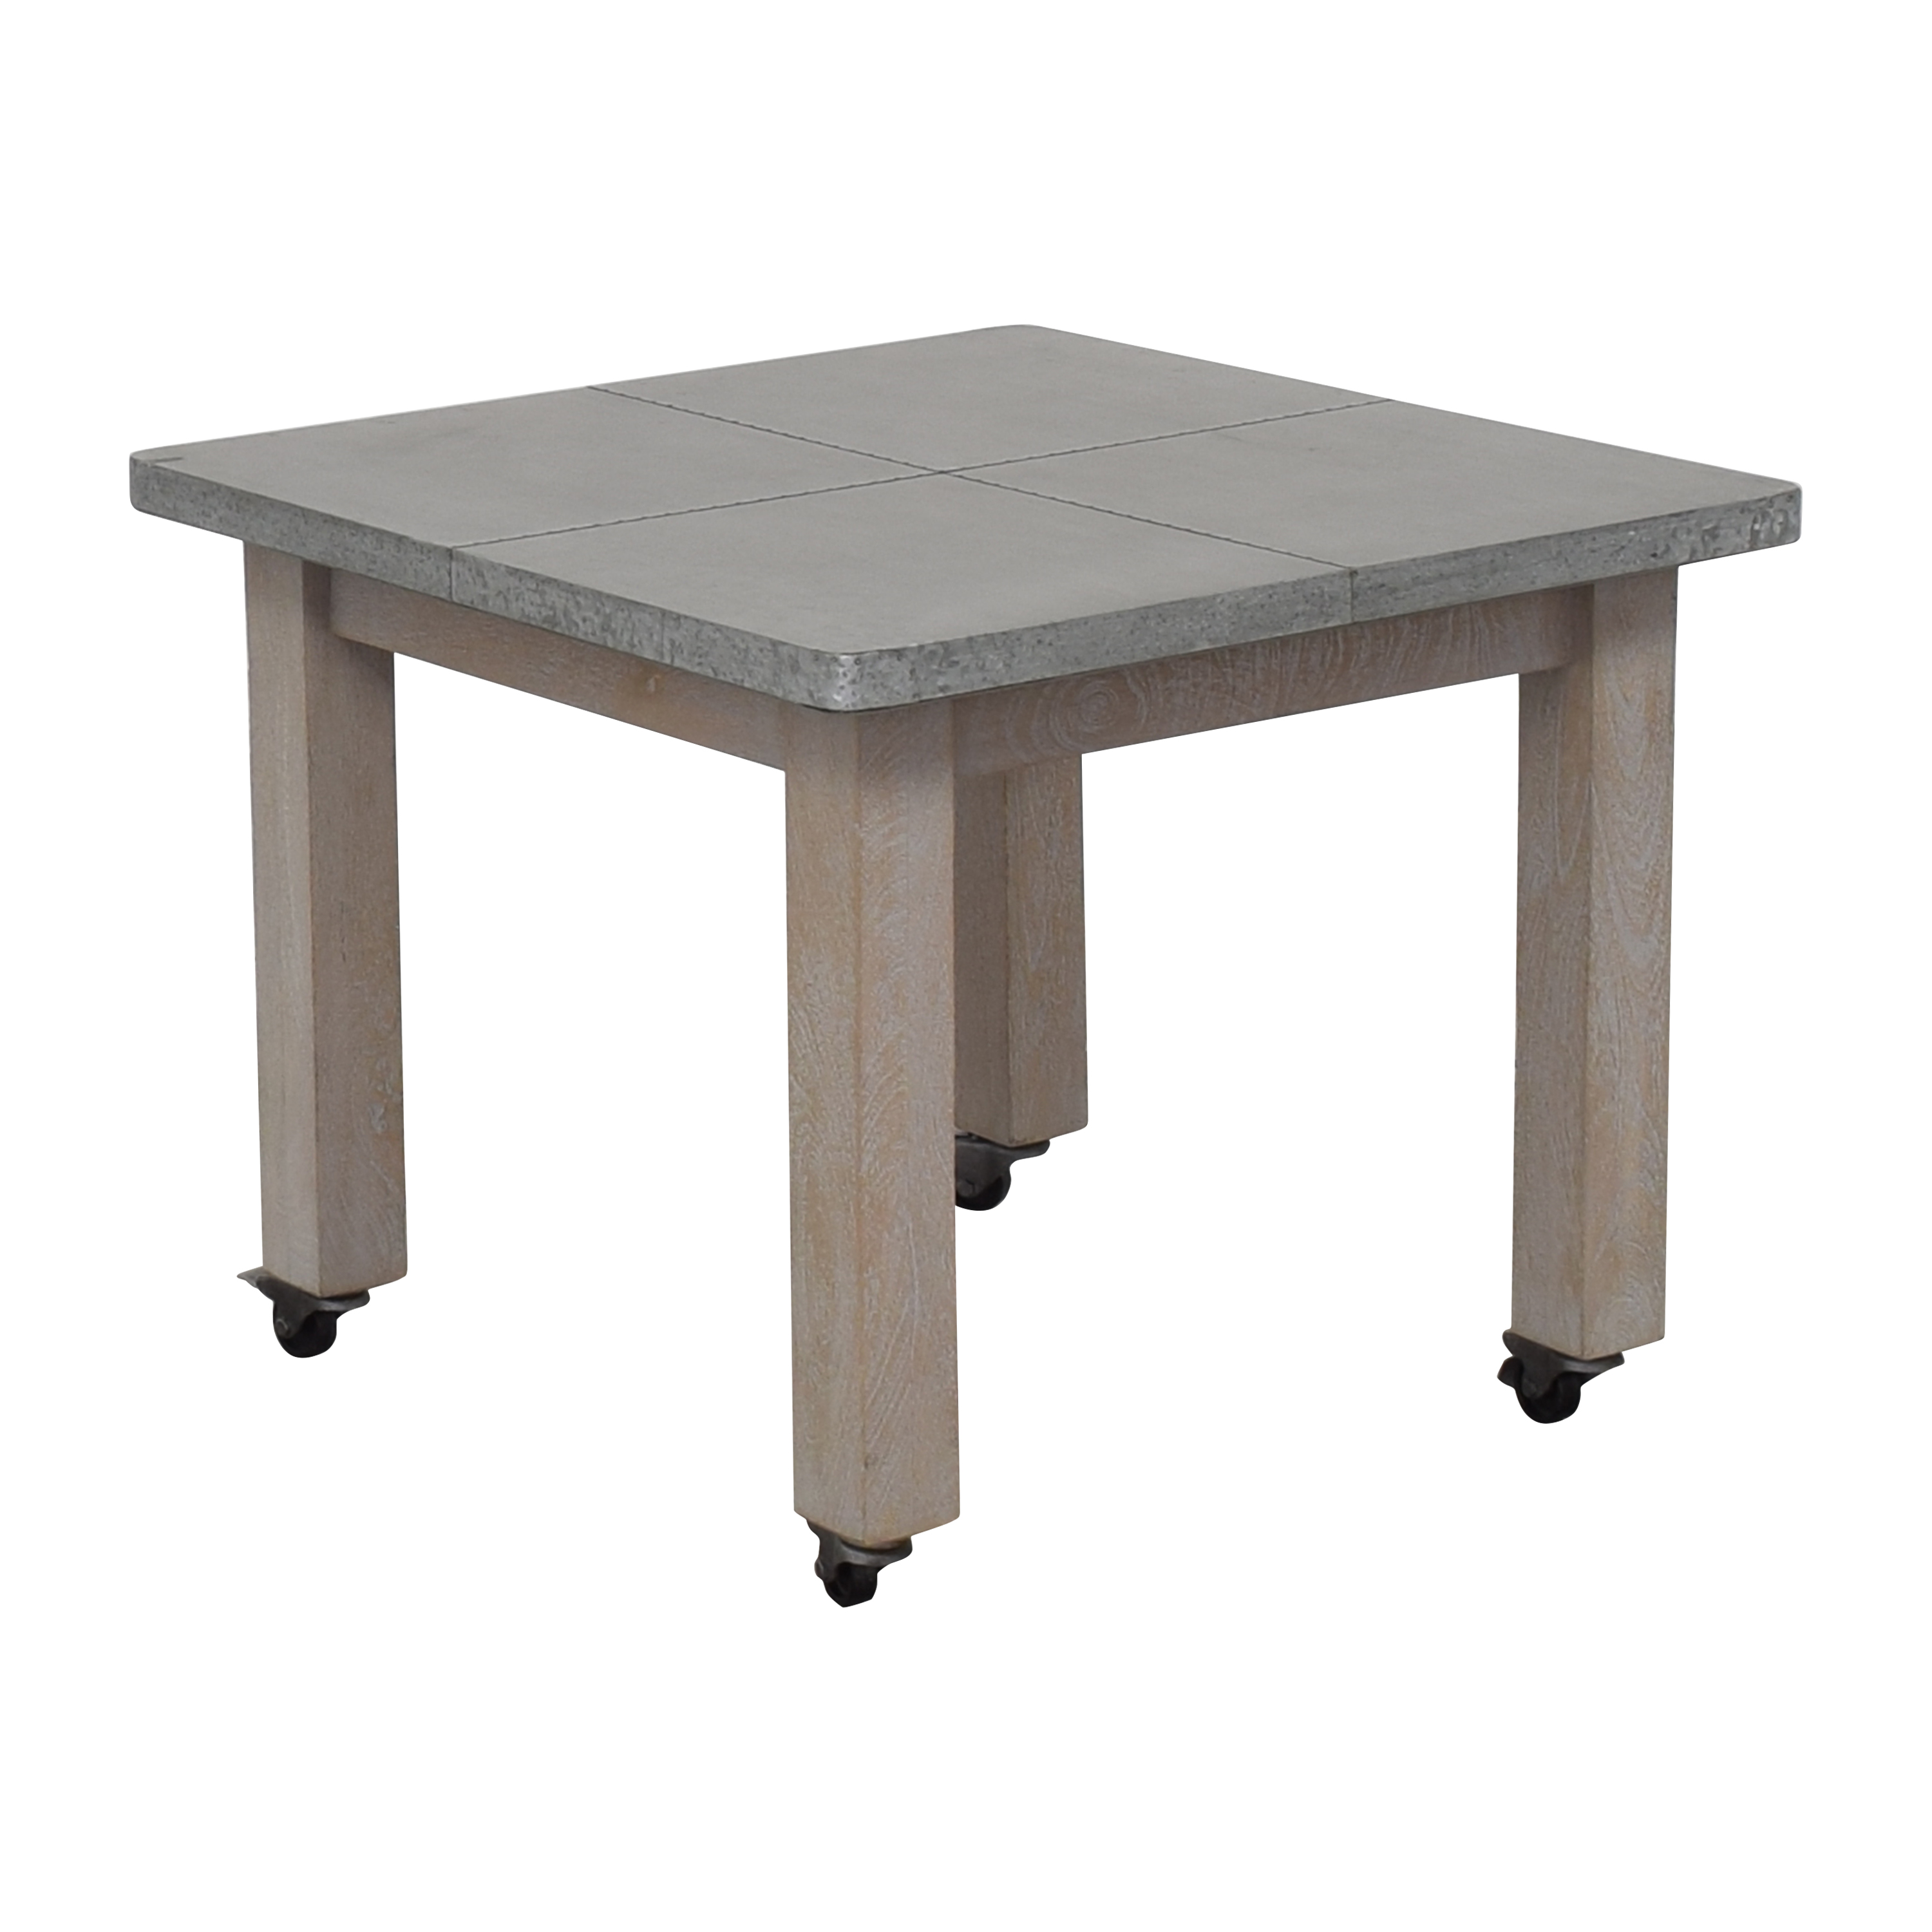 shop RH Baby & Child Vintage Schoolhouse Square Play Table RH Baby & Child